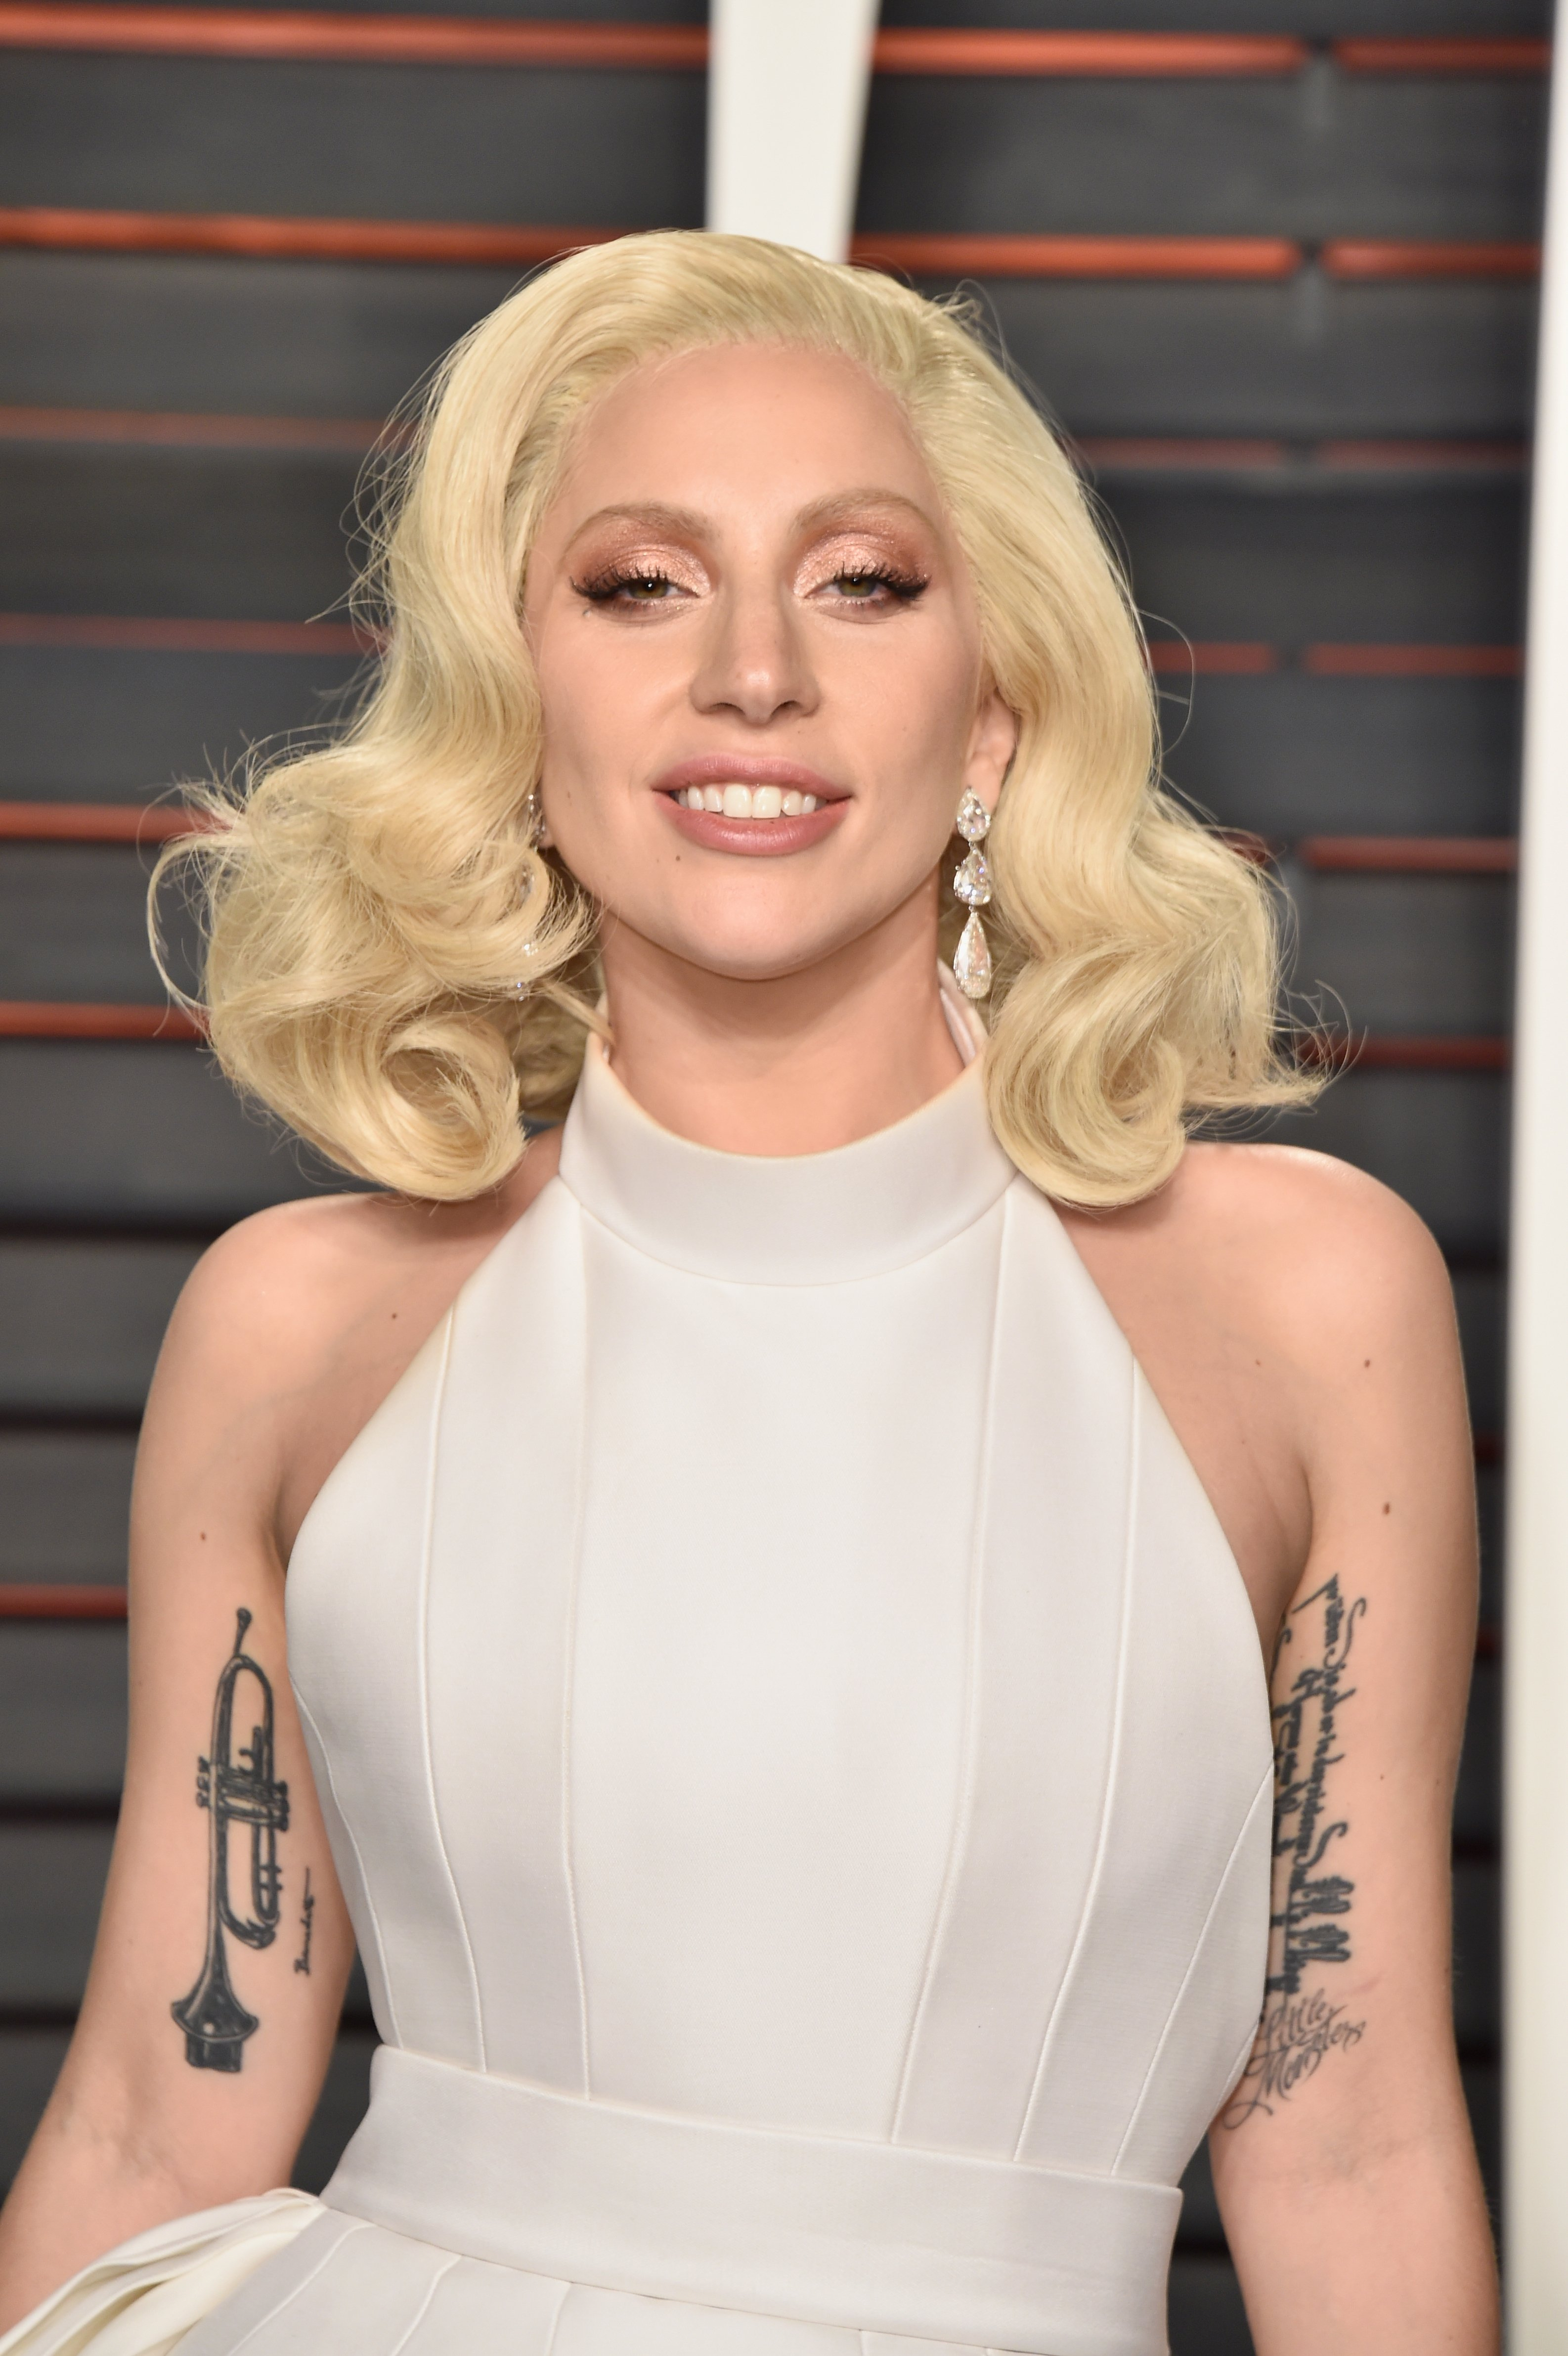 Lady Gaga attends the 2016 Vanity Fair Oscar Party on February 28, 2016, in Beverly Hills, California. | Source: Getty Images.